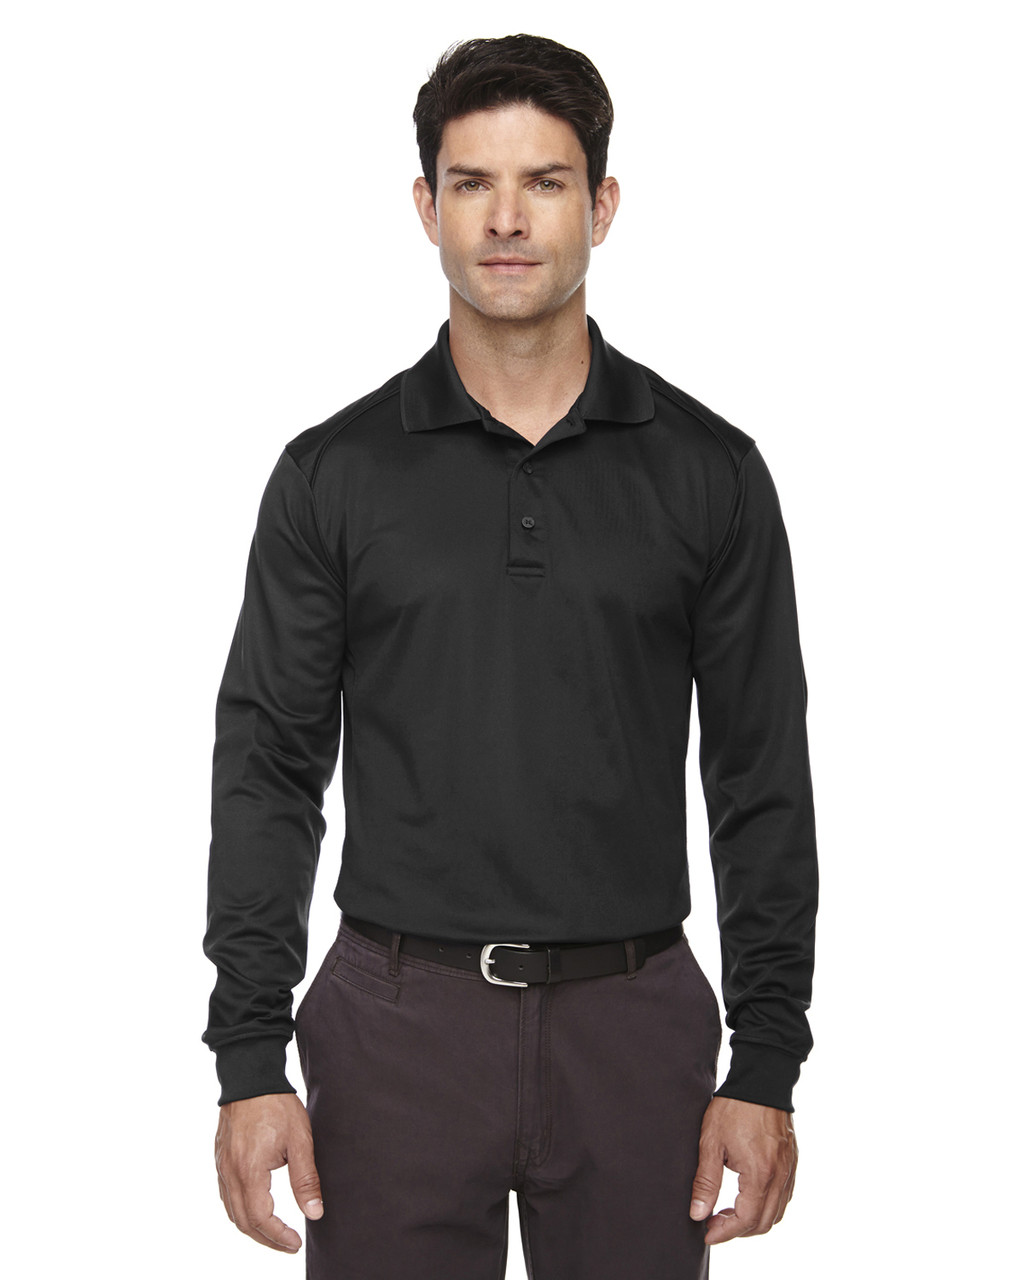 Black 85111 Ash City - Extreme Eperformance Men's Long-Sleeve Polo Shirt